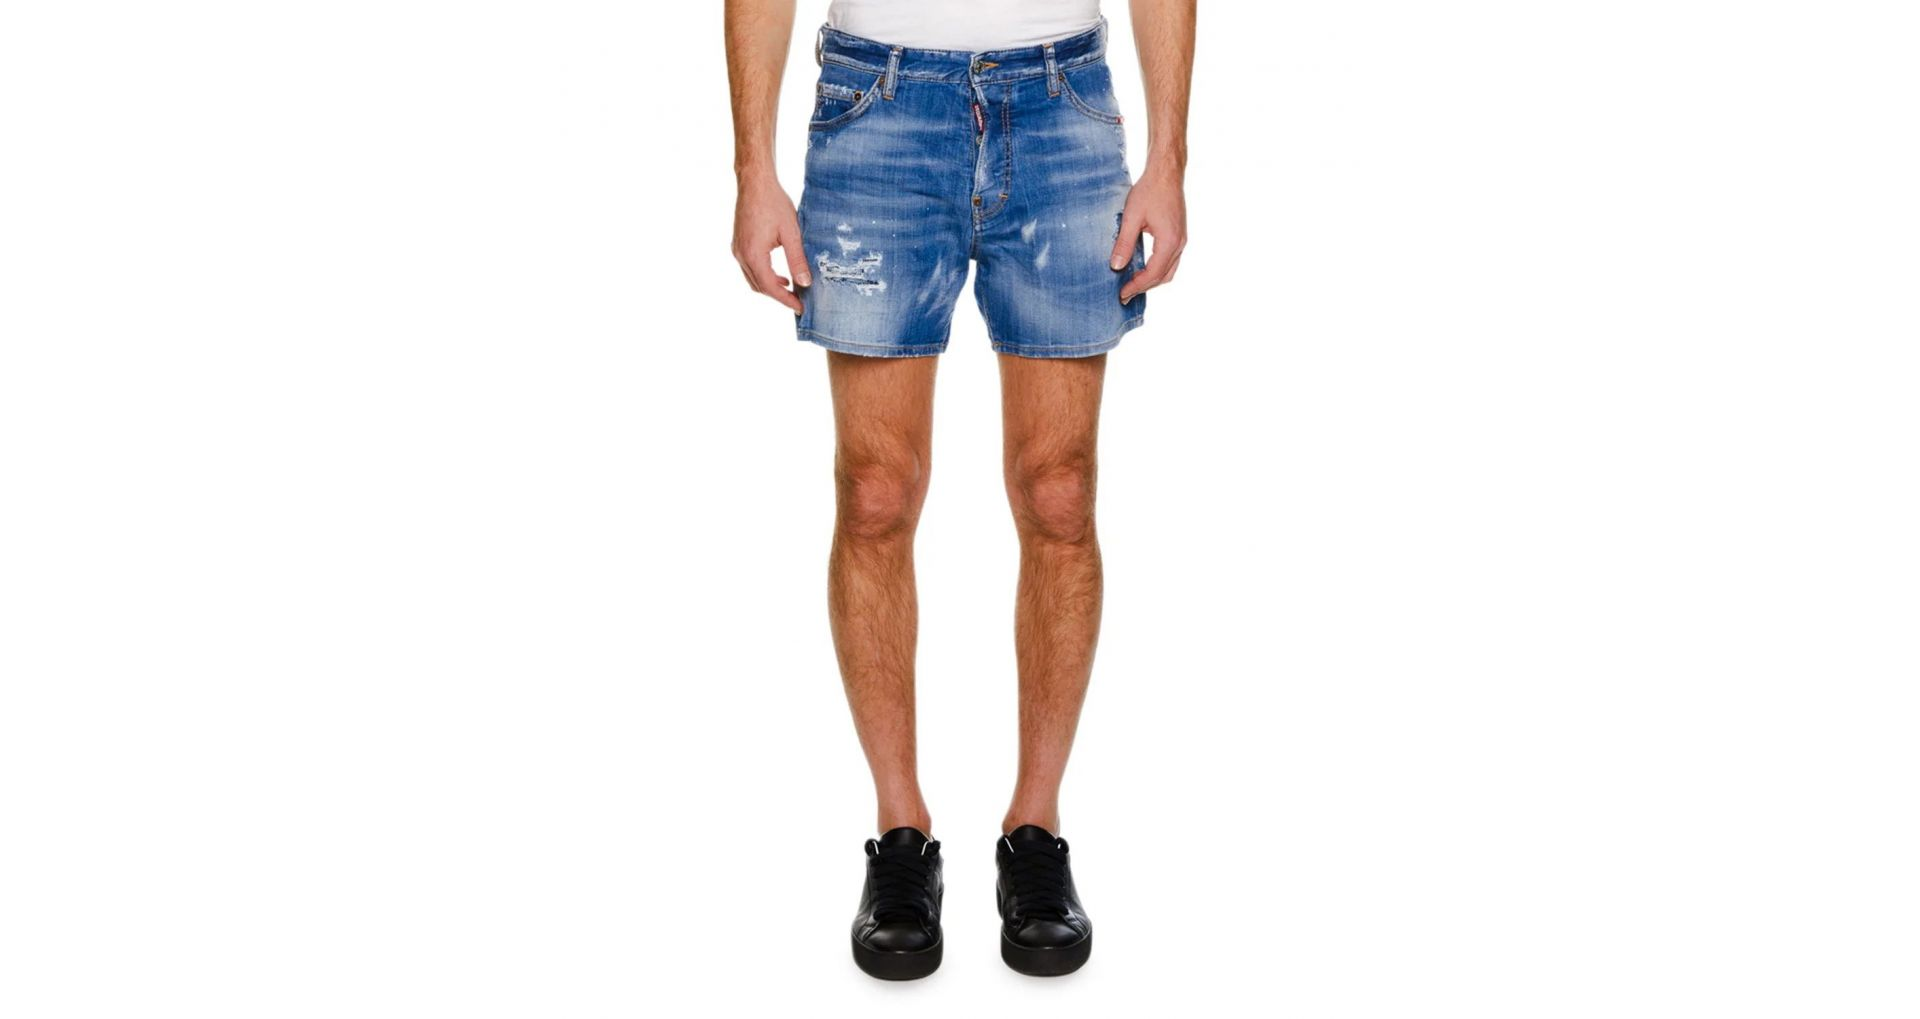 Shorts made from denim, polyester, favorite brands